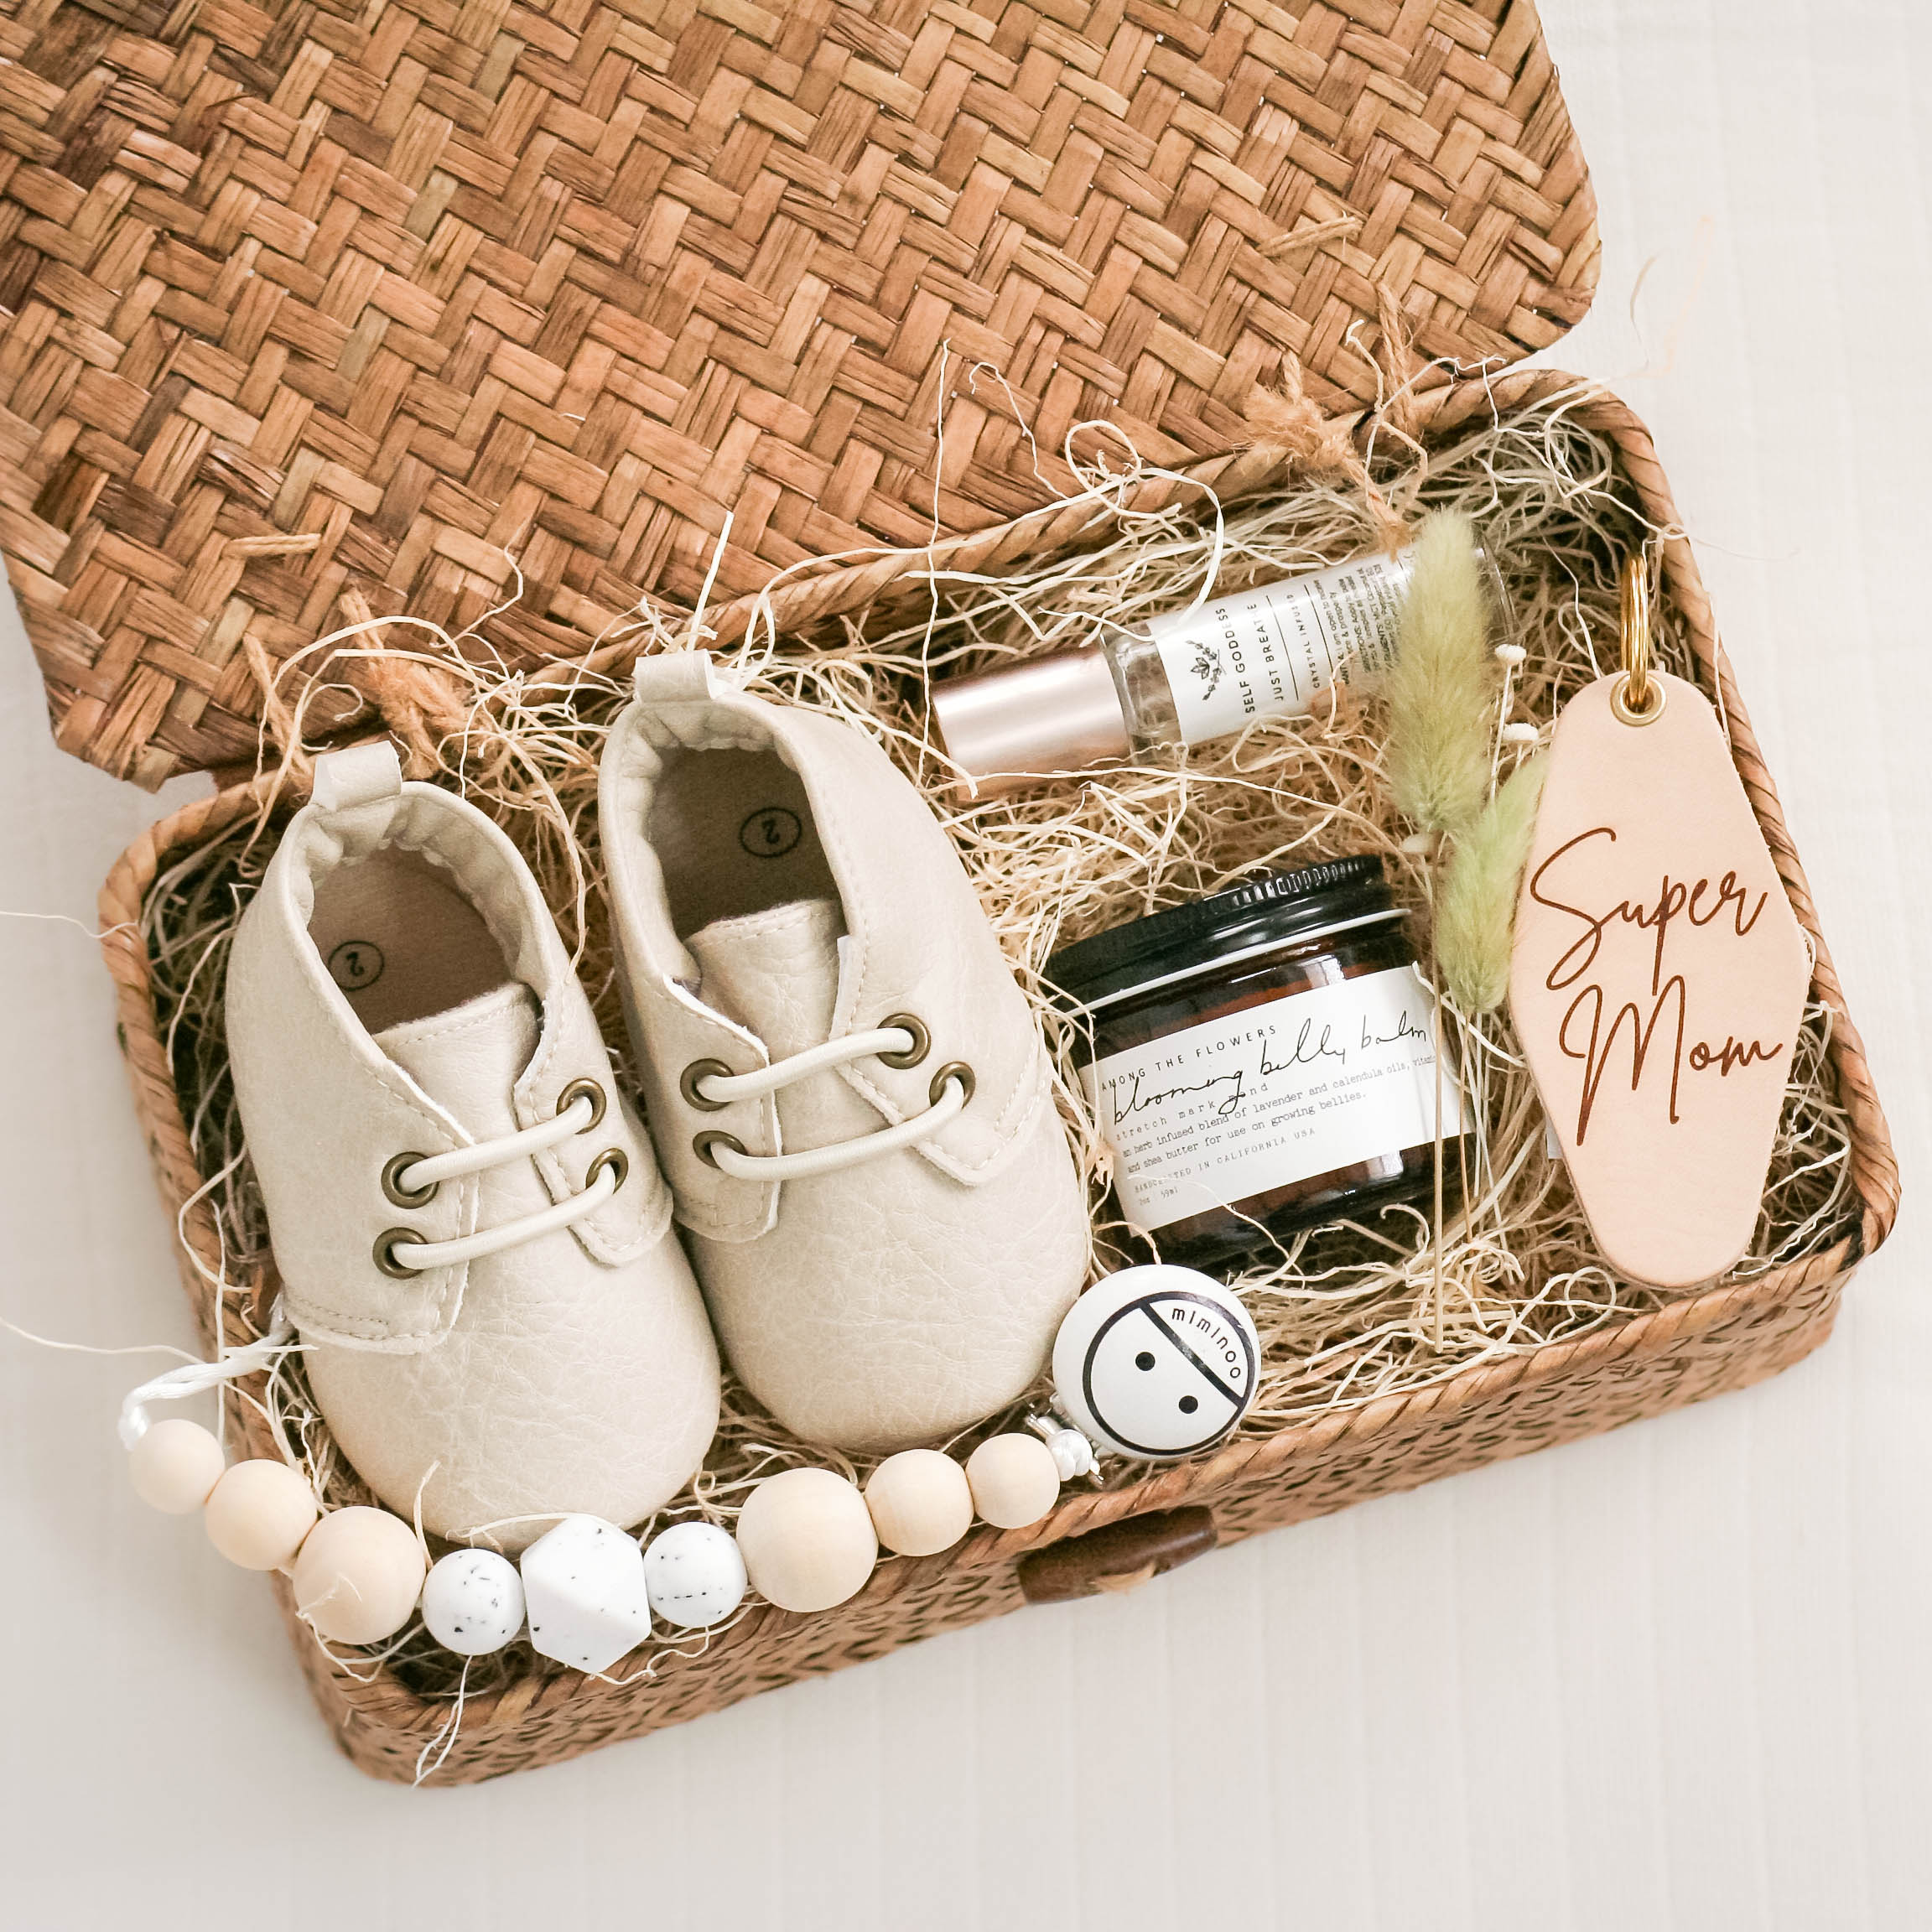 Super mom basket